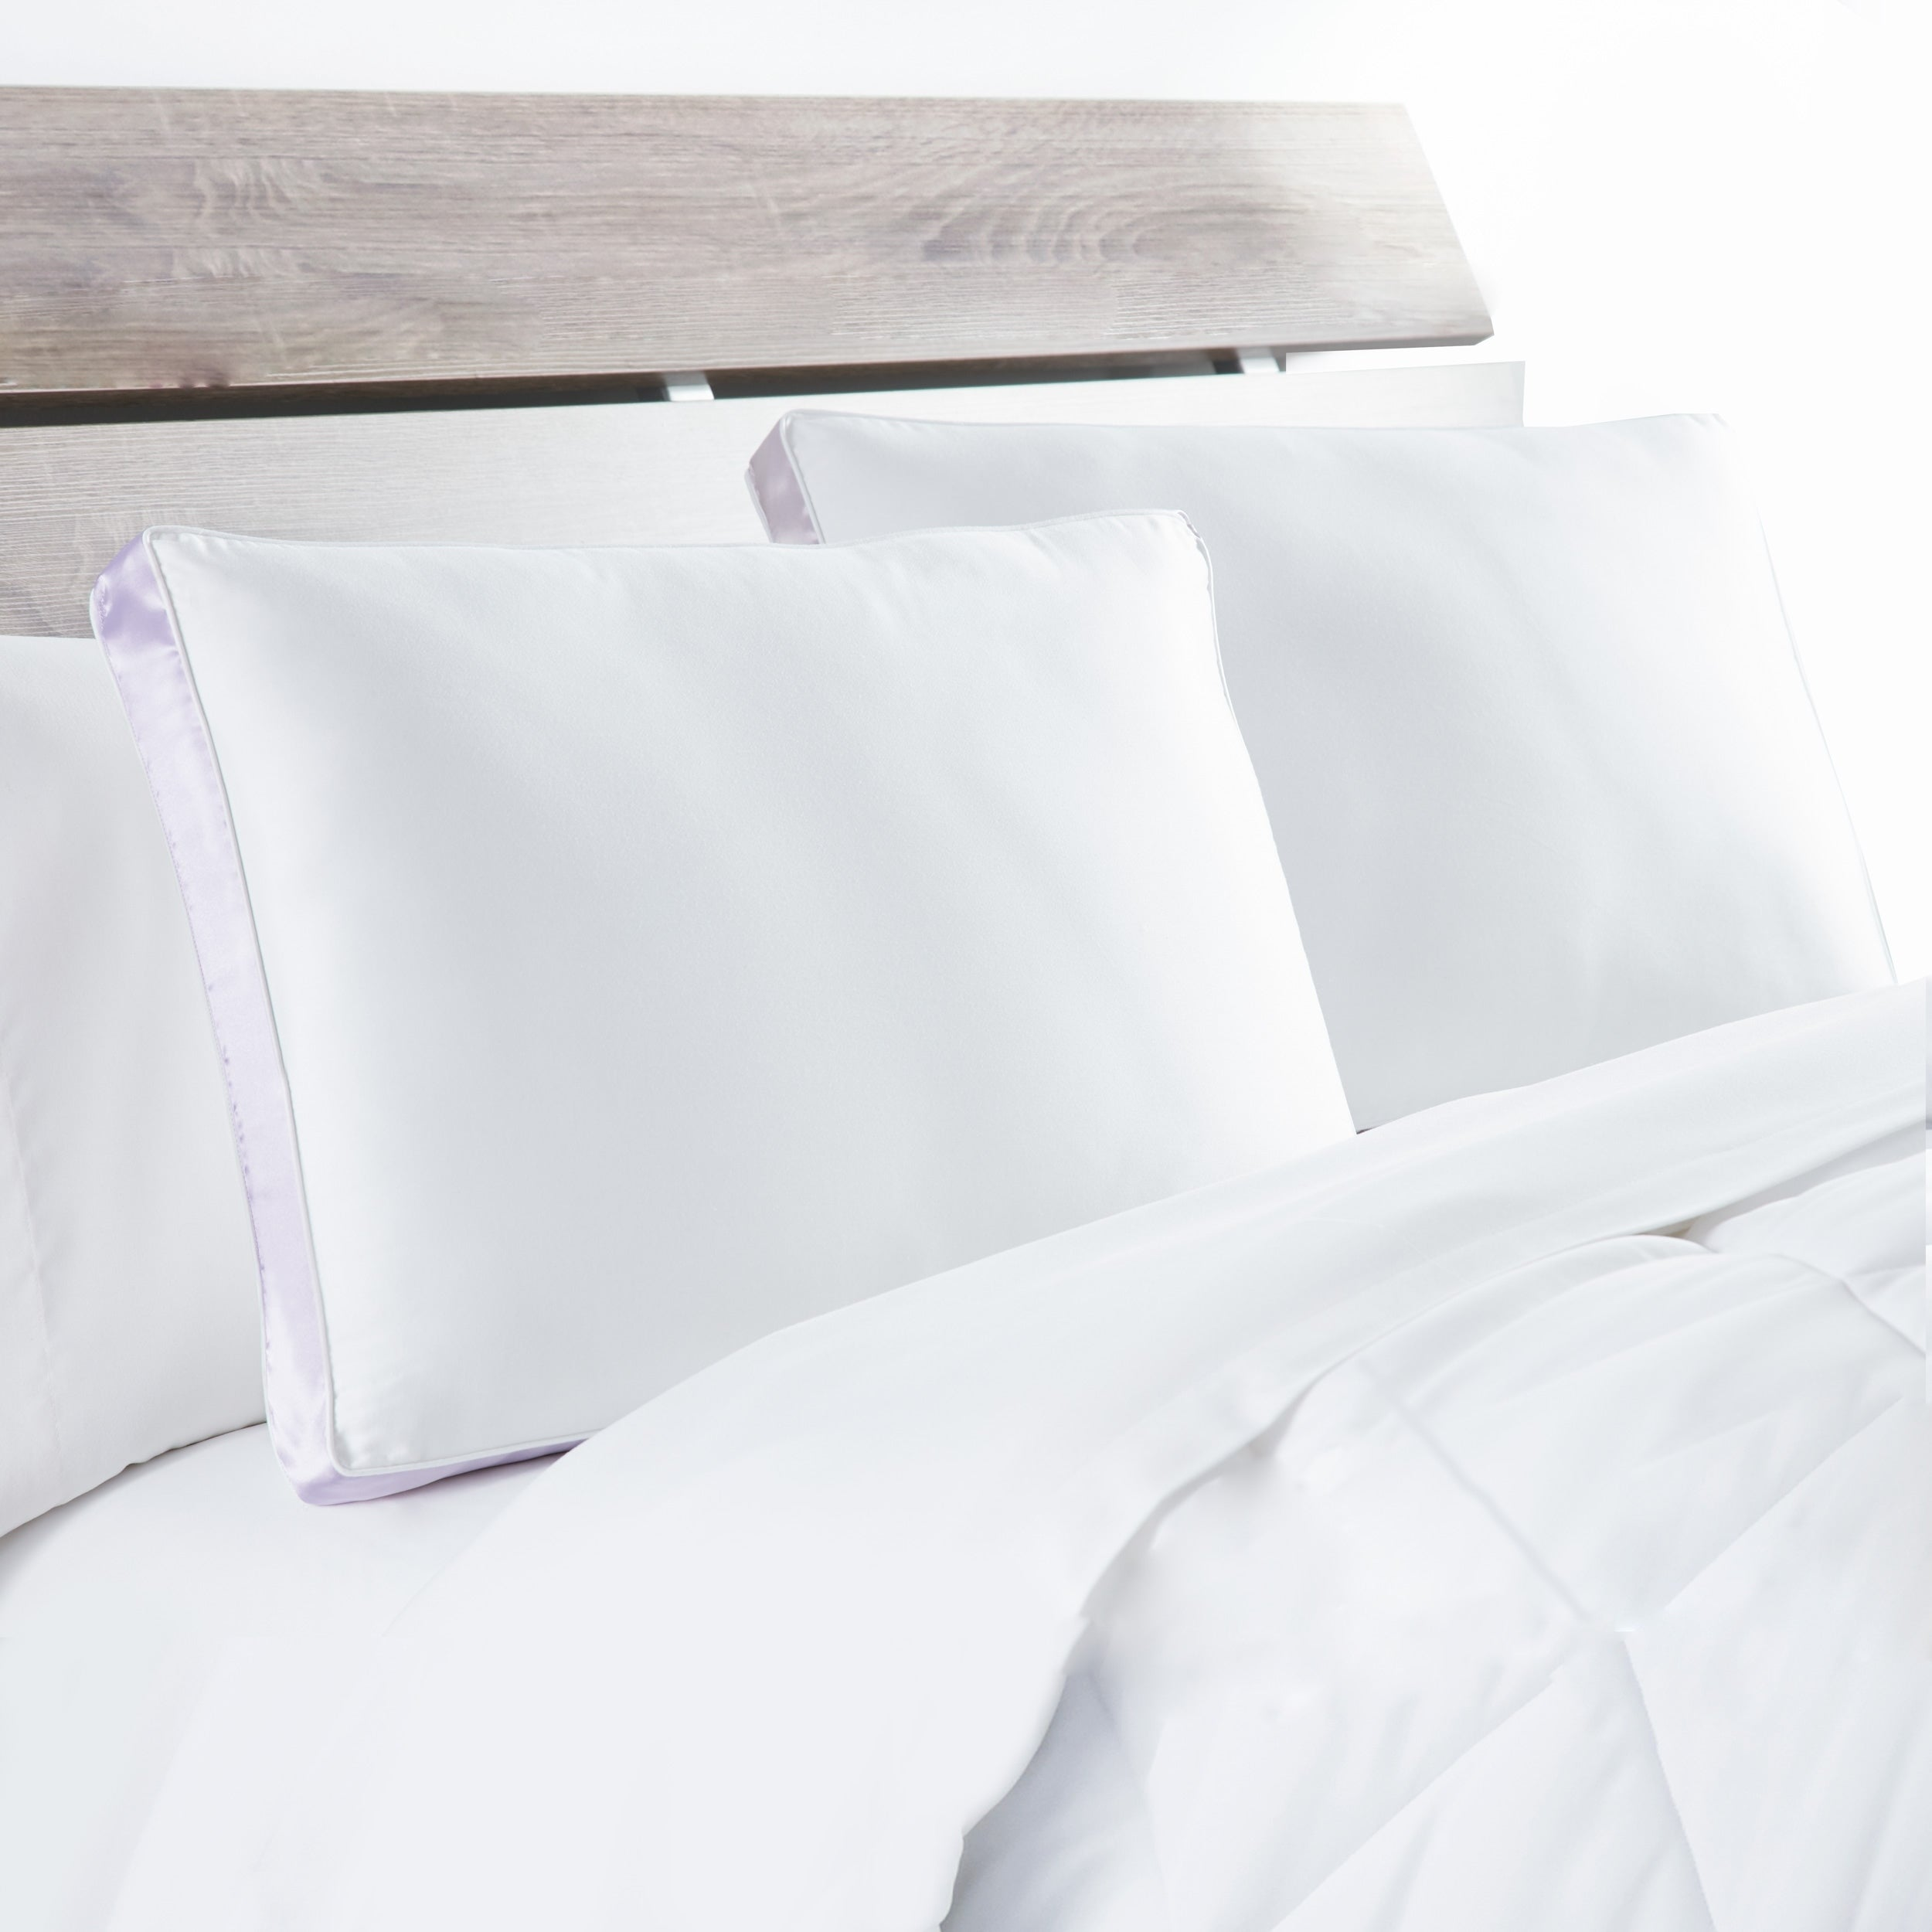 Deluxe Flat Bed Sheet Cotton 4pk Full Size White